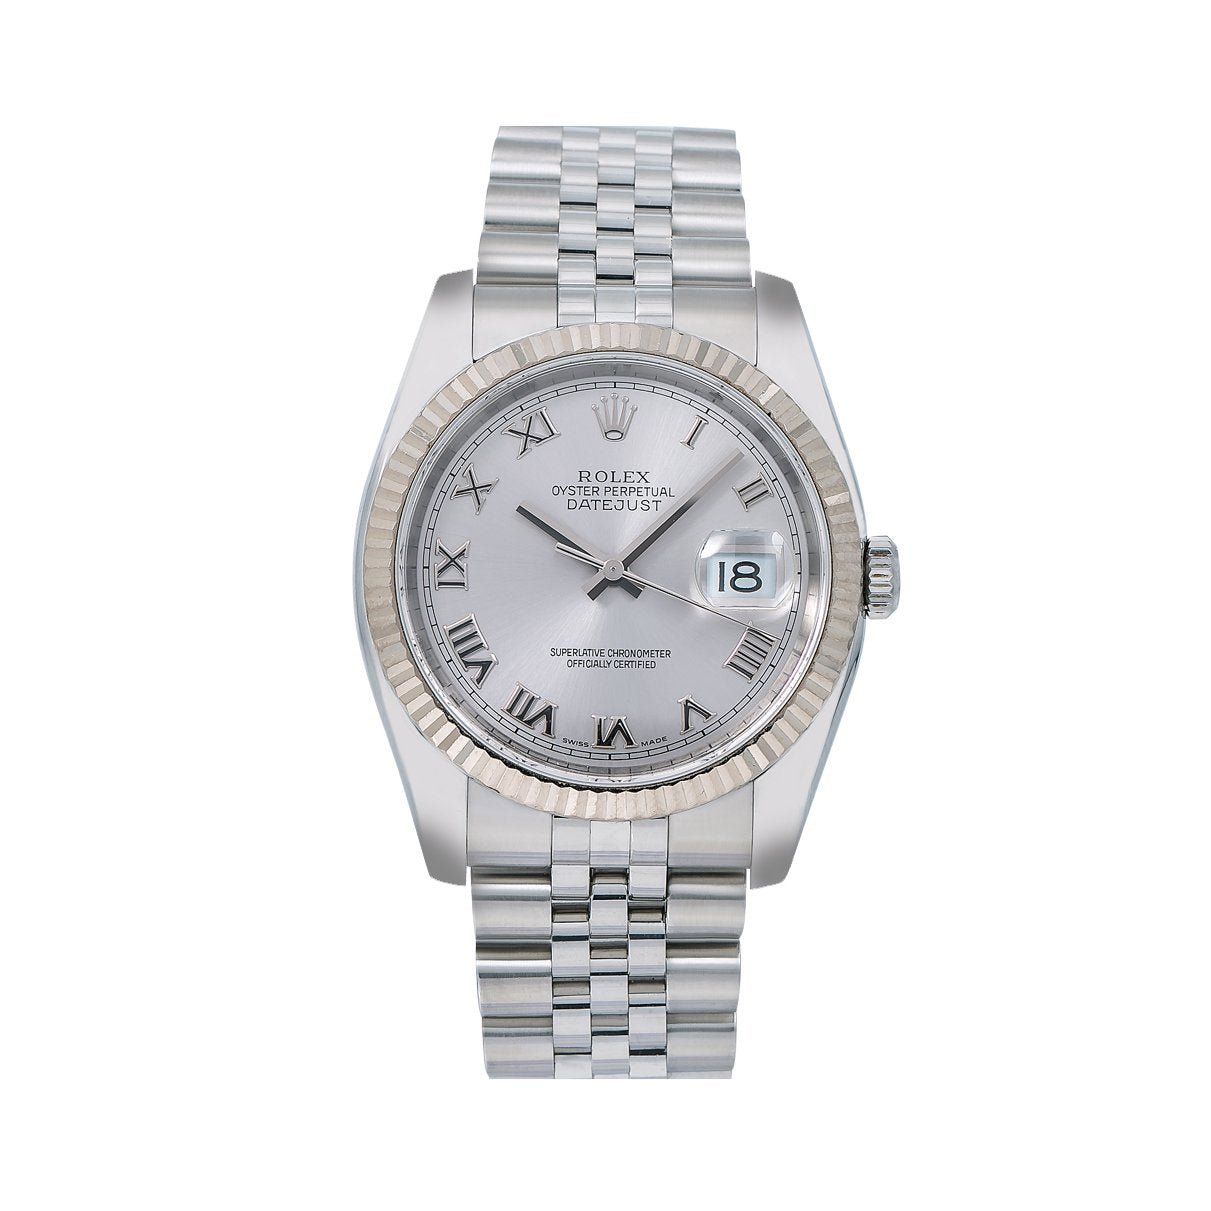 Rolex Datejust 116234 36MM Silver Dial With Stainless Steel Bracelet